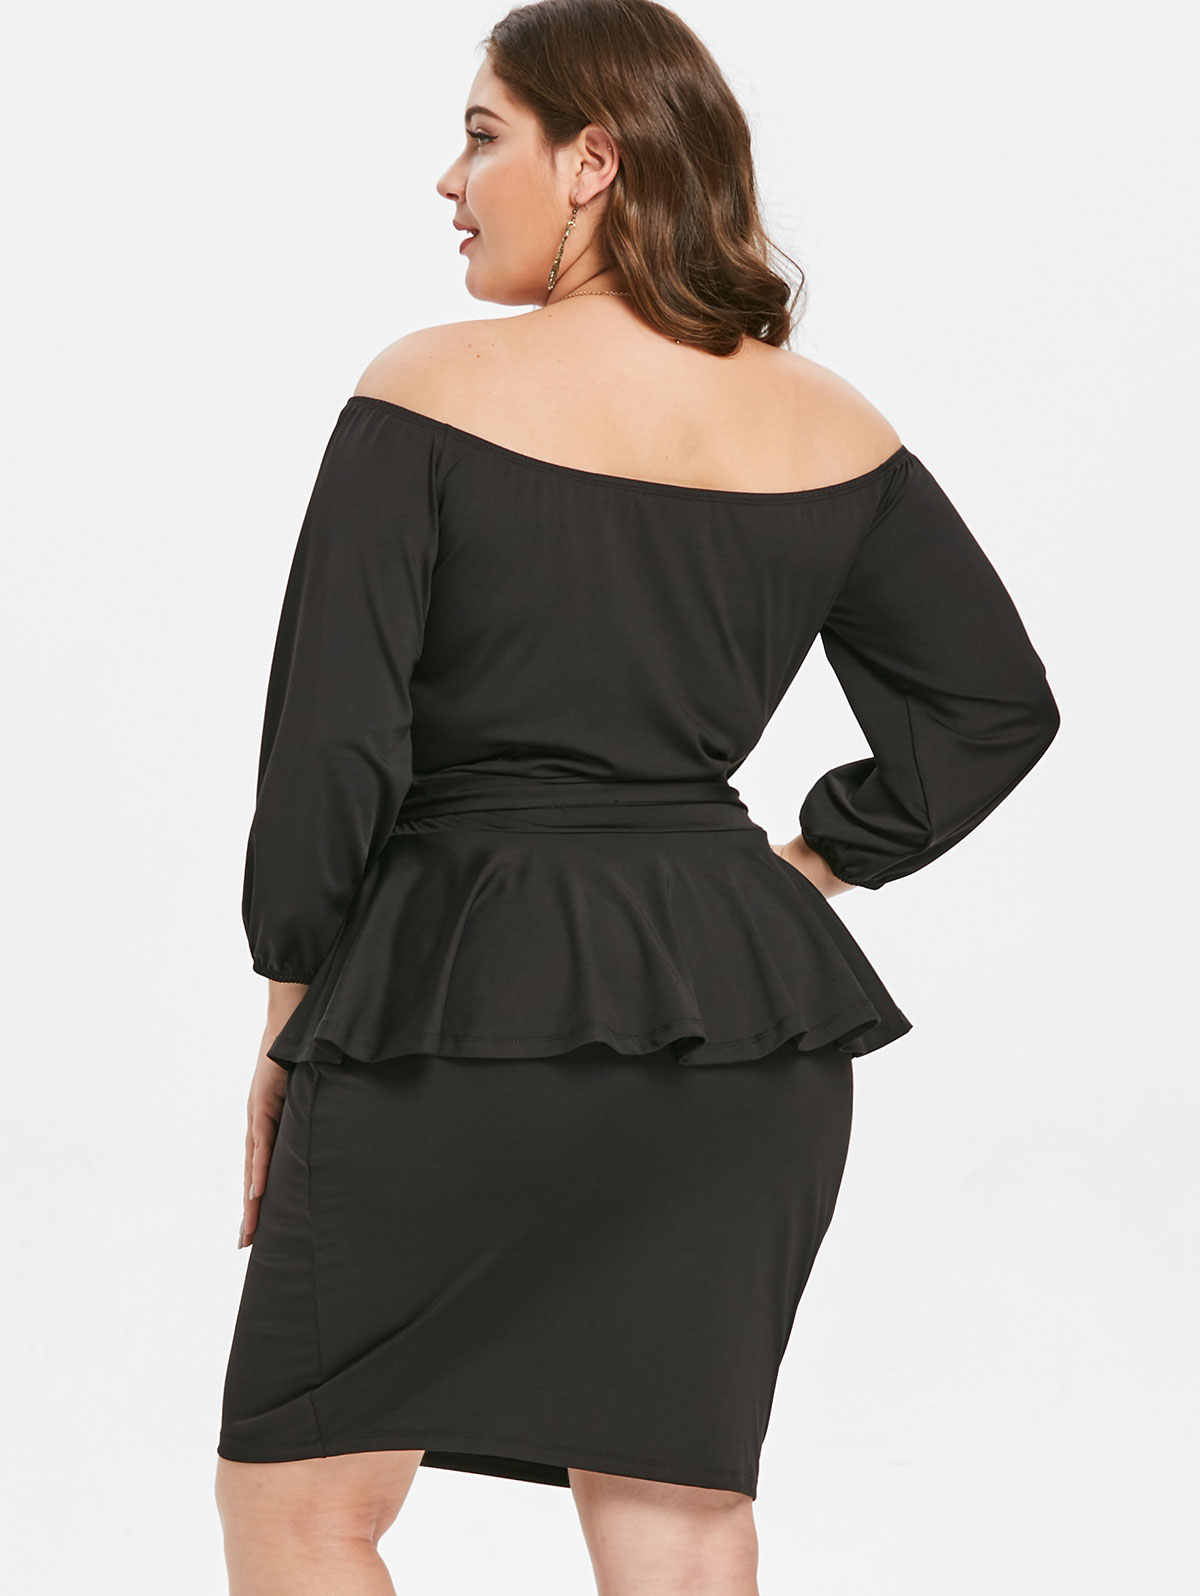 ... Wipalo Plus Size Off The Shoulder 3 4 Sleeves Belted Peplum Dress Women  Clothing Winter ... 0a10dc398f55